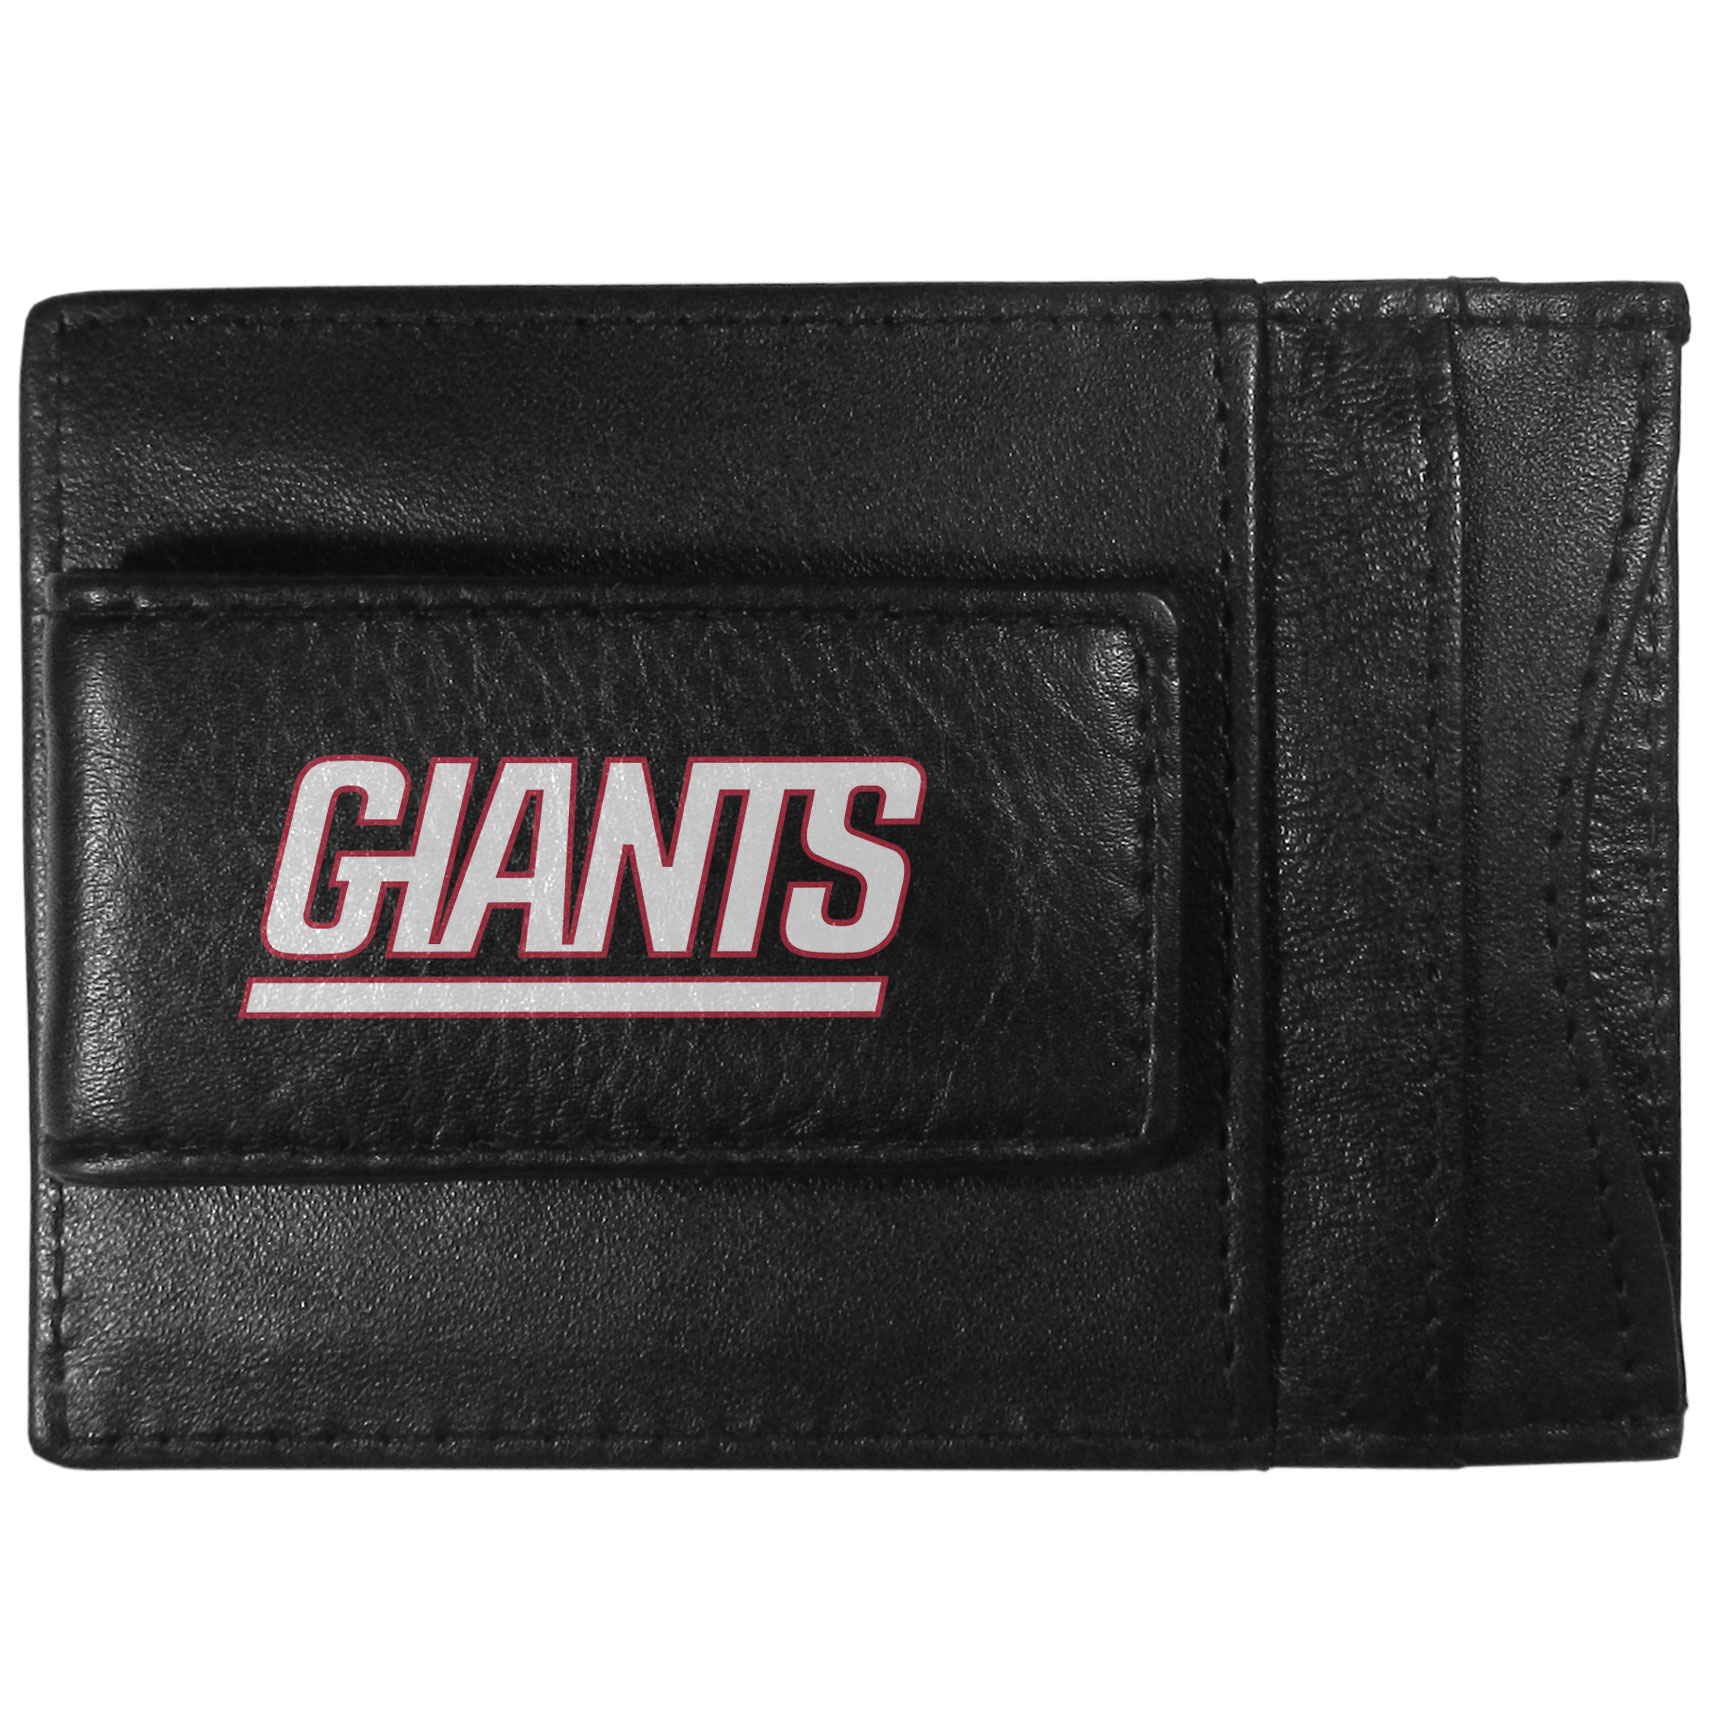 New York Giants Logo Leather Cash and Cardholder - This super slim leather wallet lets you have all the benefits of a money clip while keeping the organization of a wallet. On one side of this front pocket wallet there is a strong, magnetic money clip to keep your cash easily accessible and the?New York Giants team logo on the front. The versatile men's accessory is a perfect addition to your fan apparel.